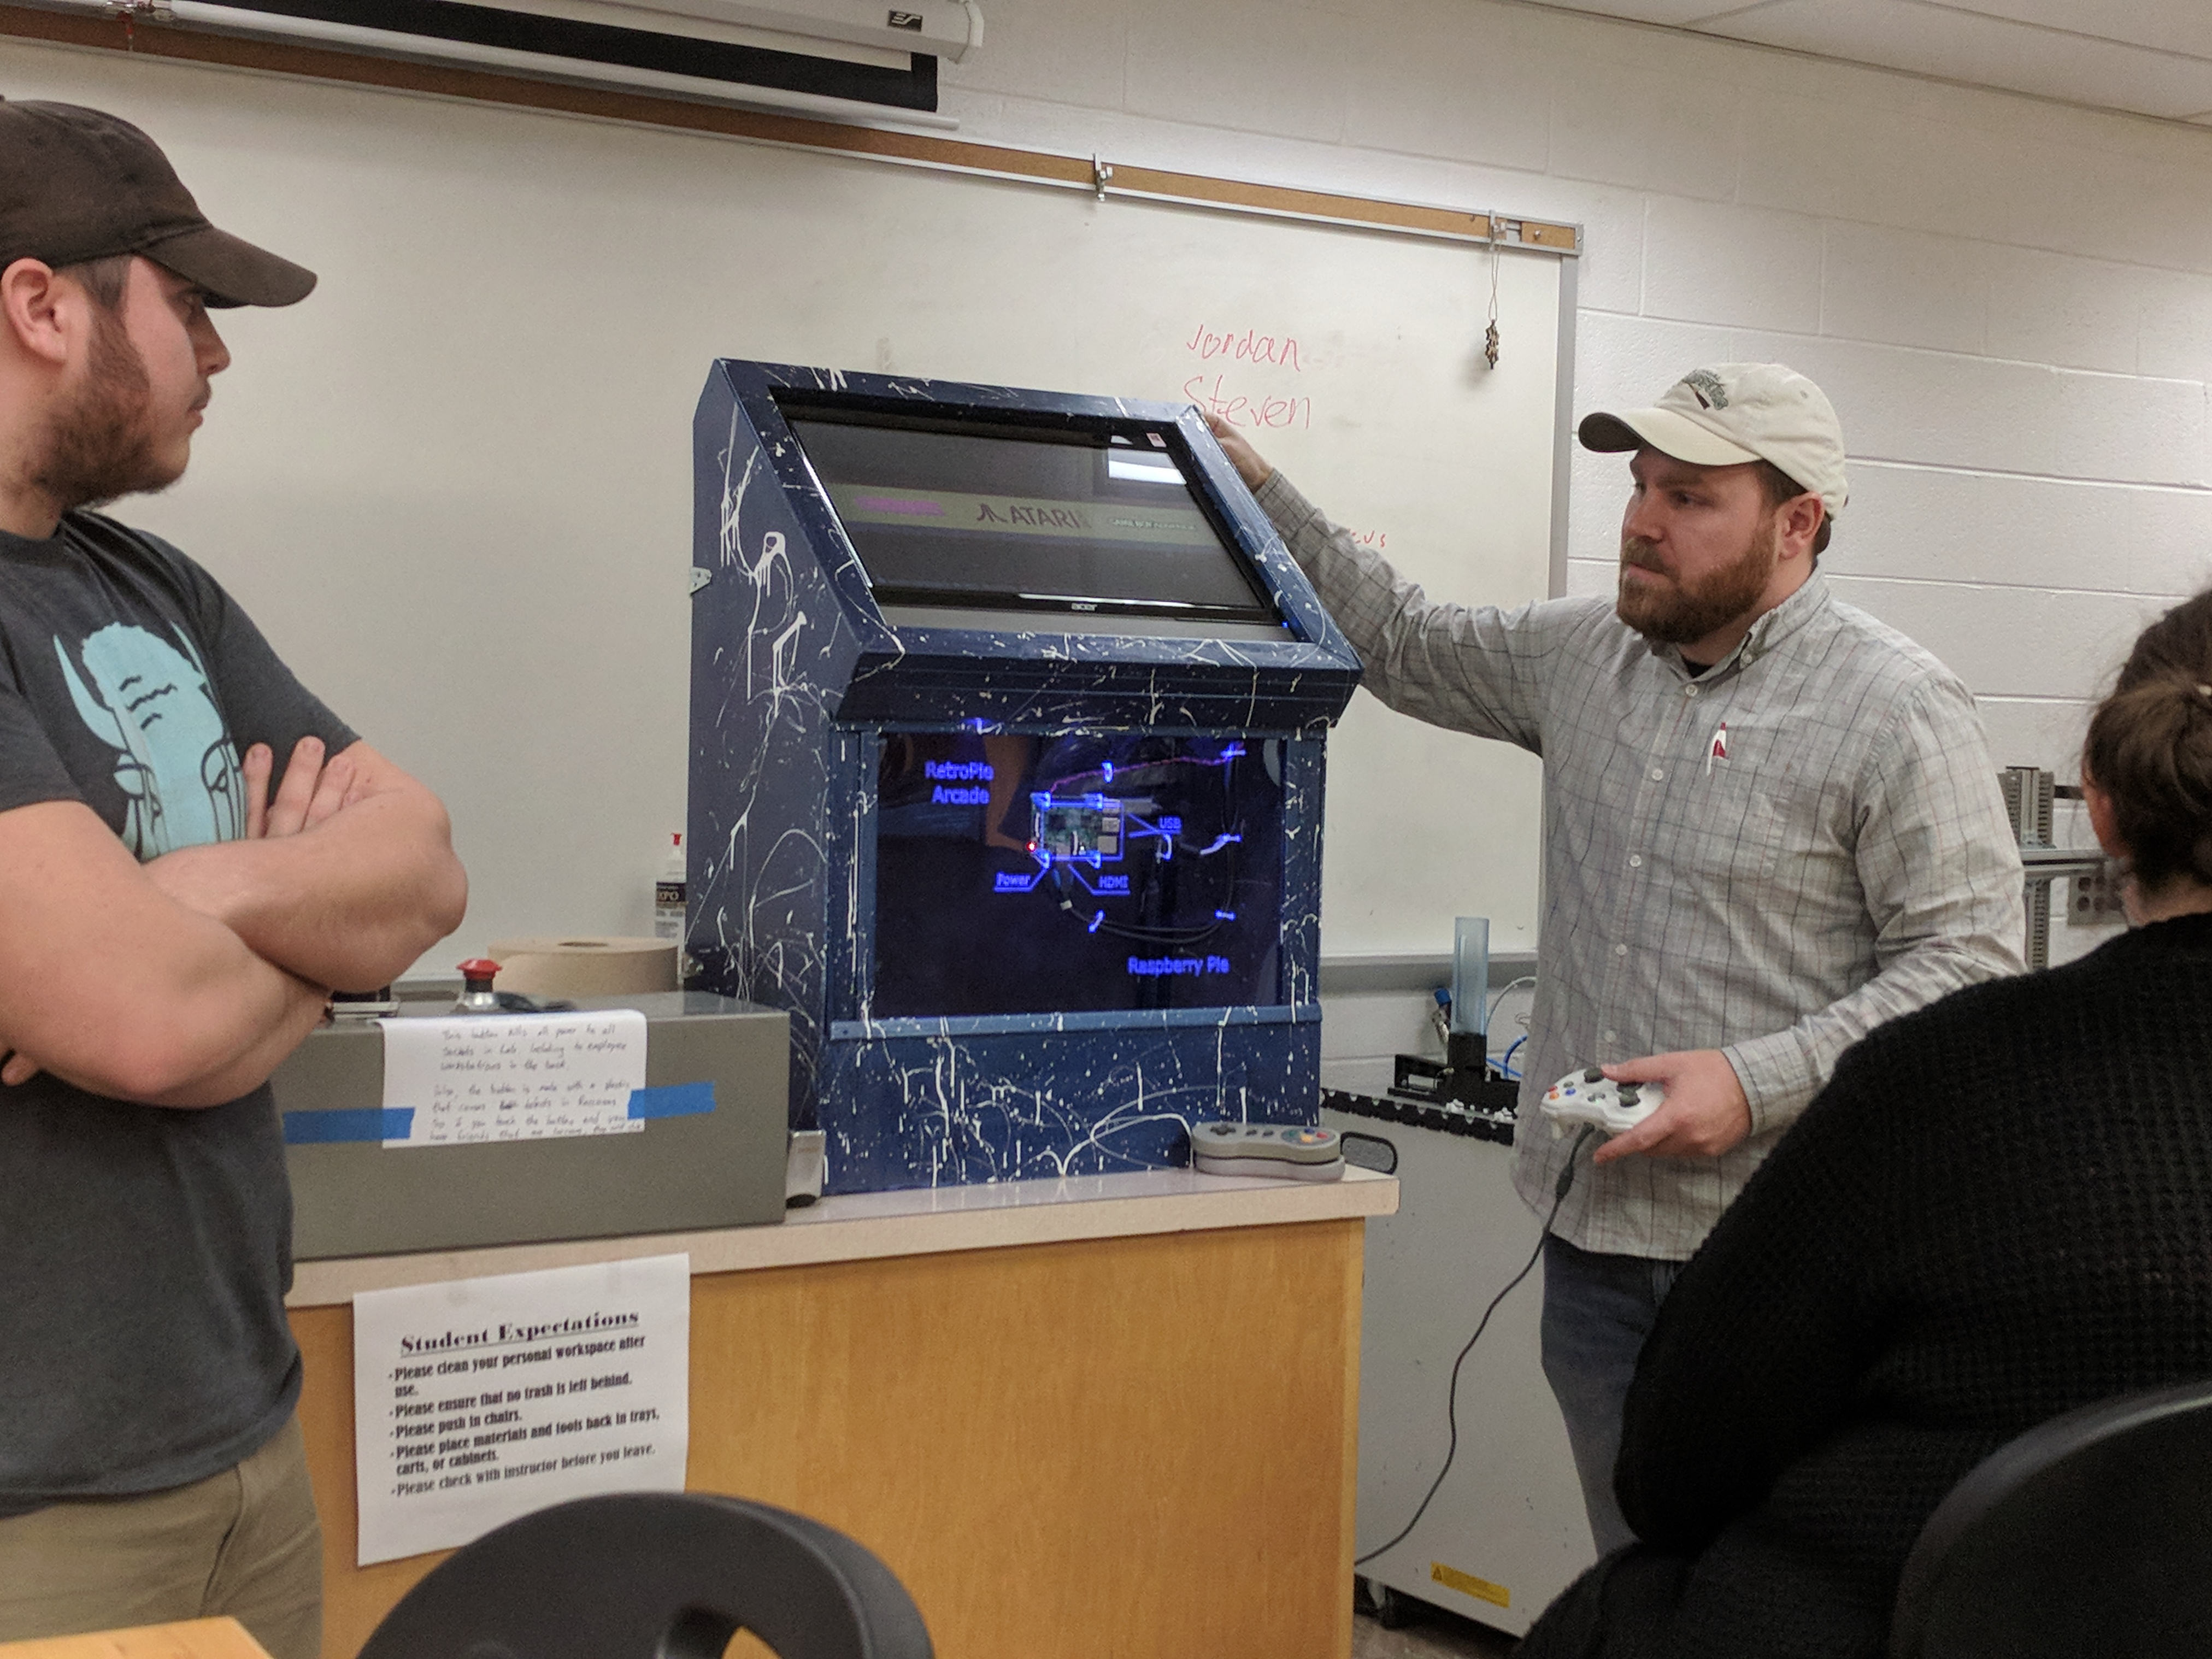 Students Show off a Game Arcade